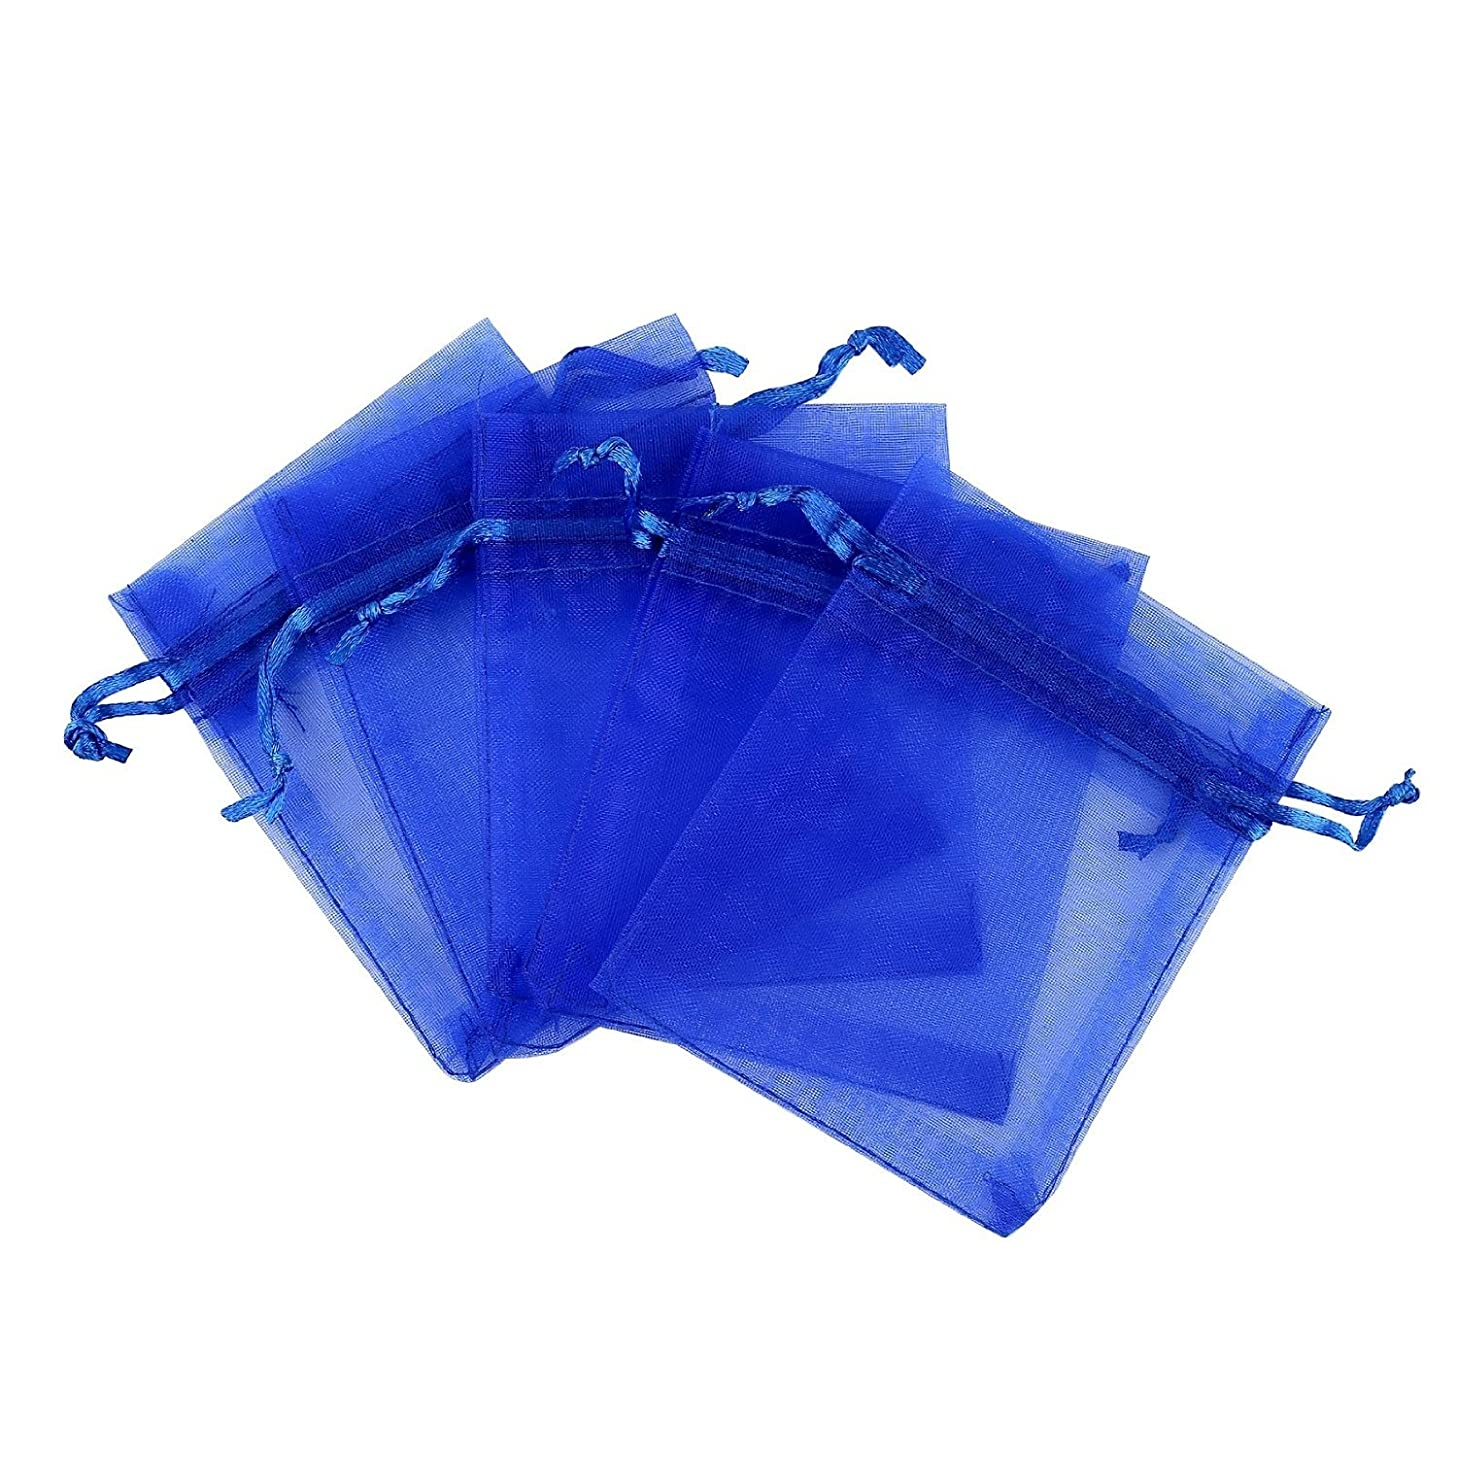 Fengirl Drawstring Organza Jewelry Pouches Wedding Party Christmas Favor Gift Candy Bag (4x6inch, Blue)